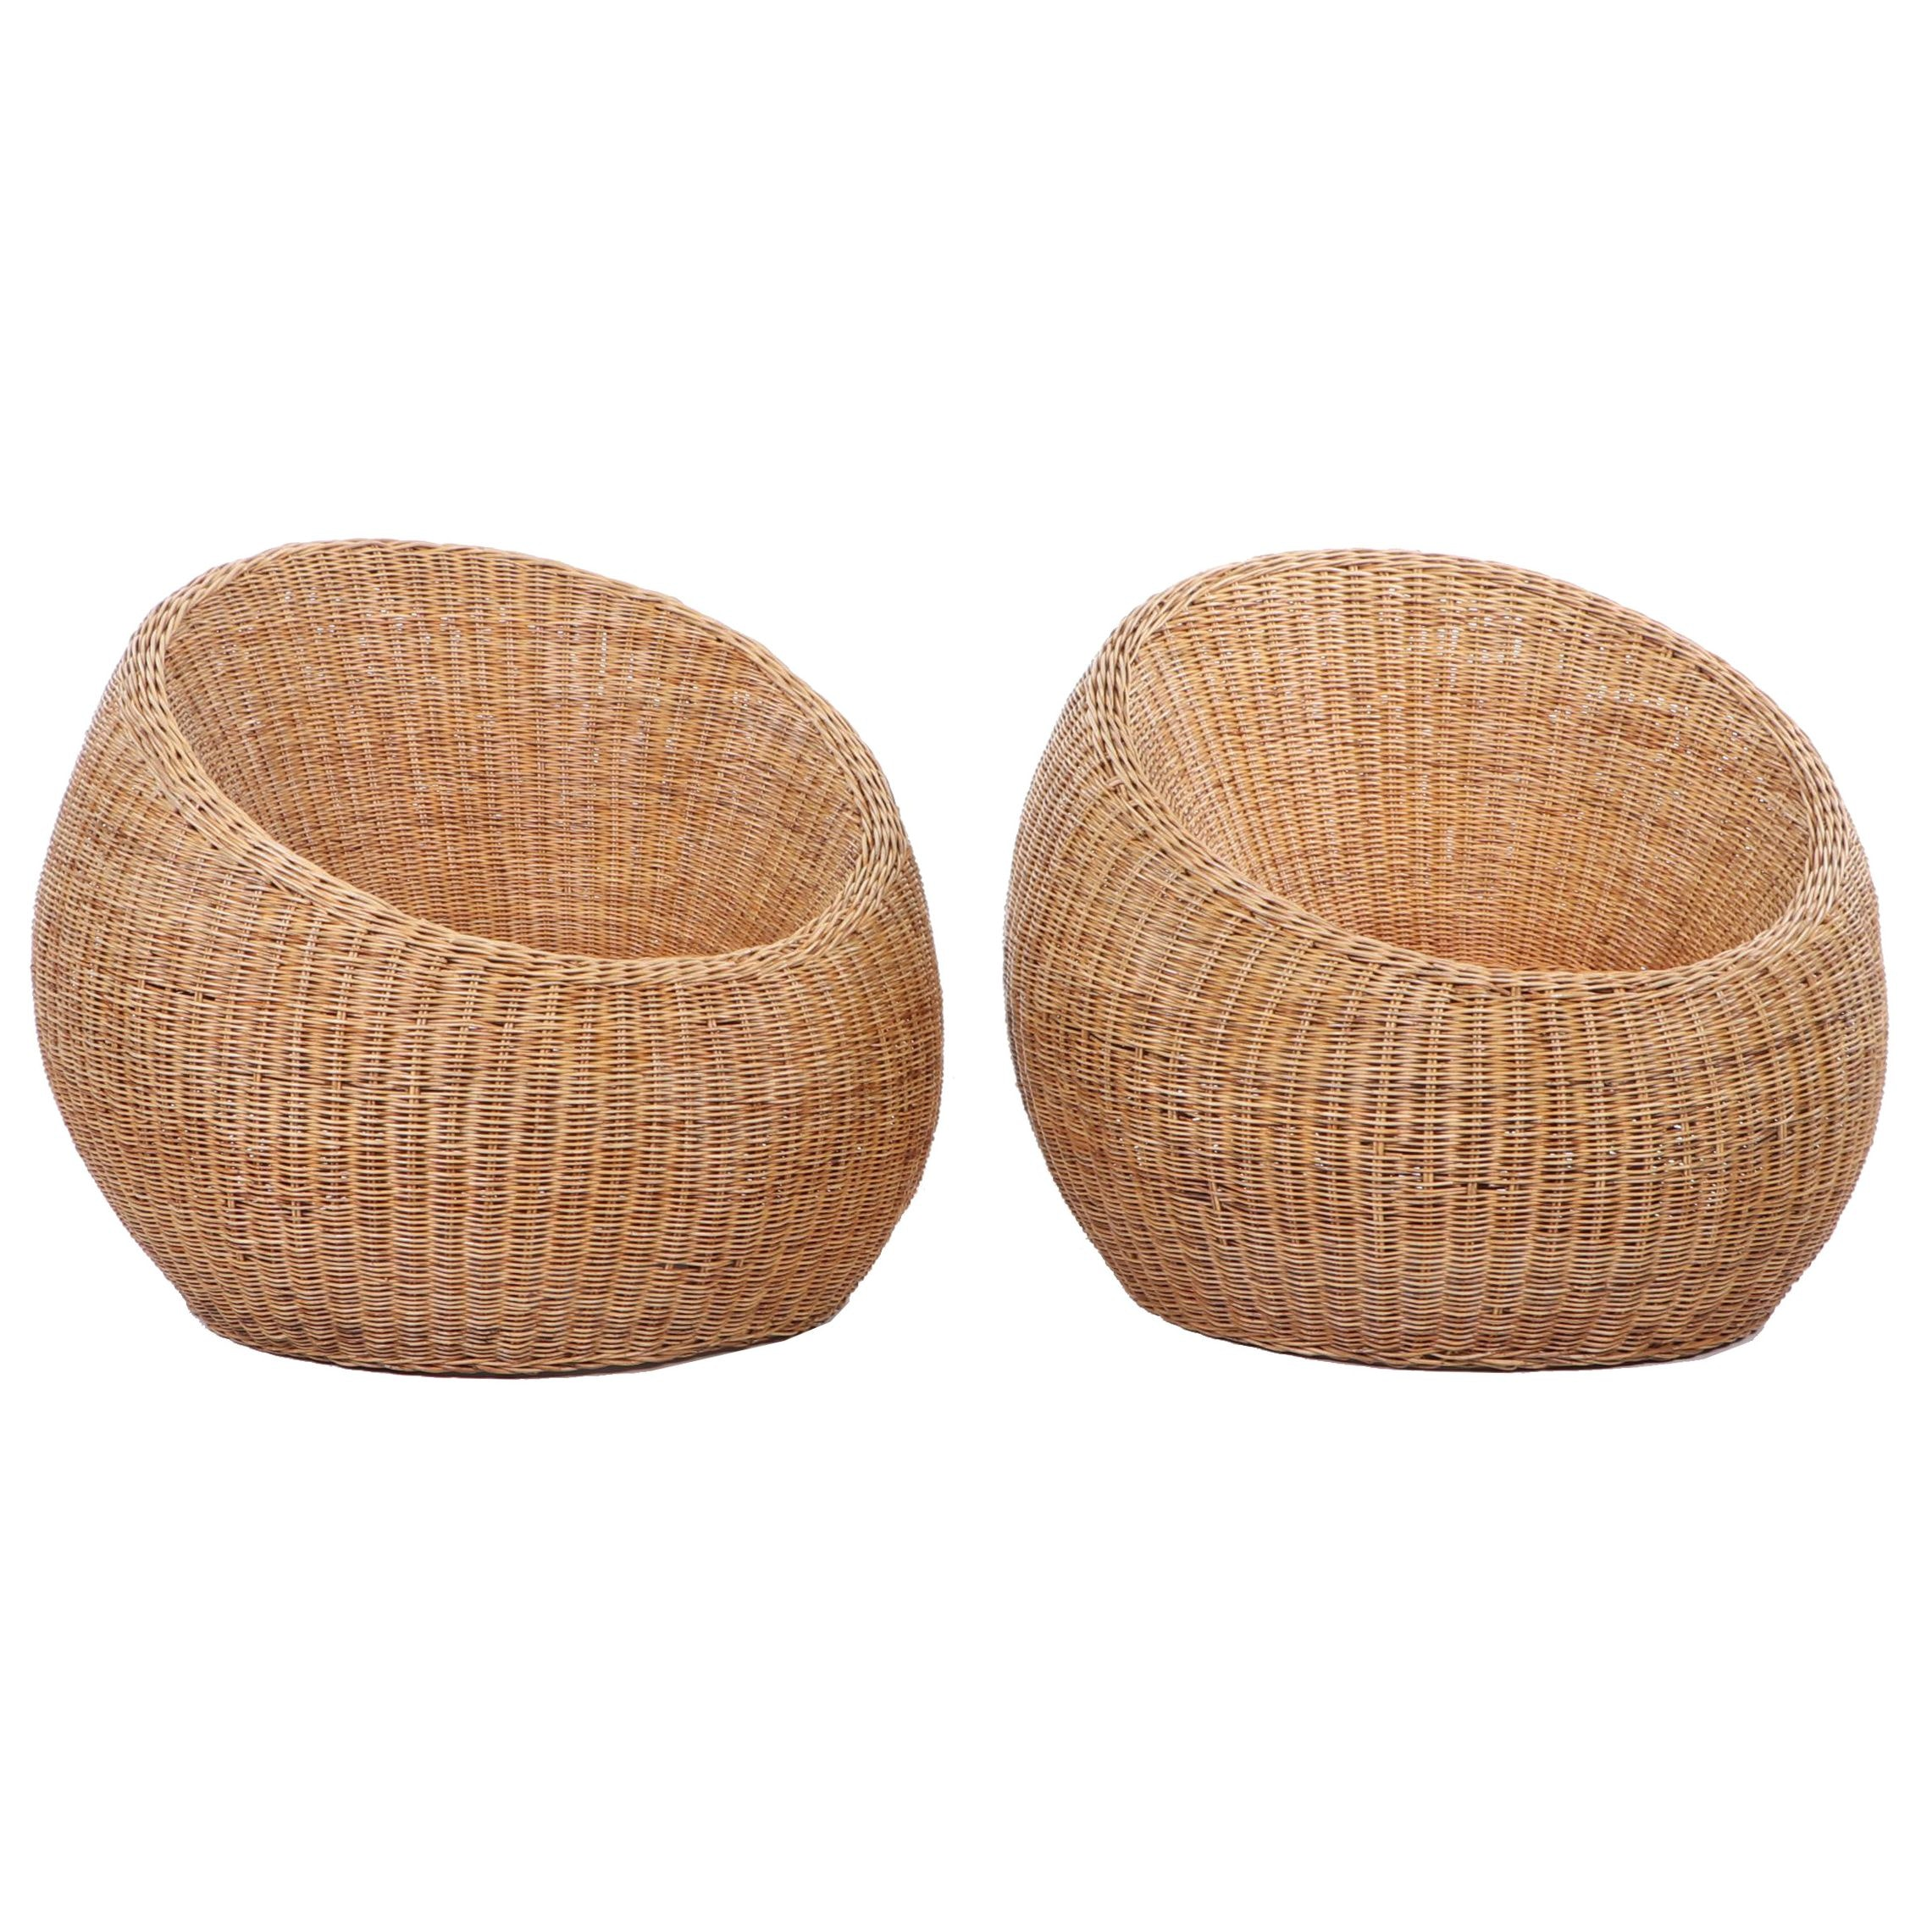 Pair of Contemporary Wicker and Rattan Bucket Chairs